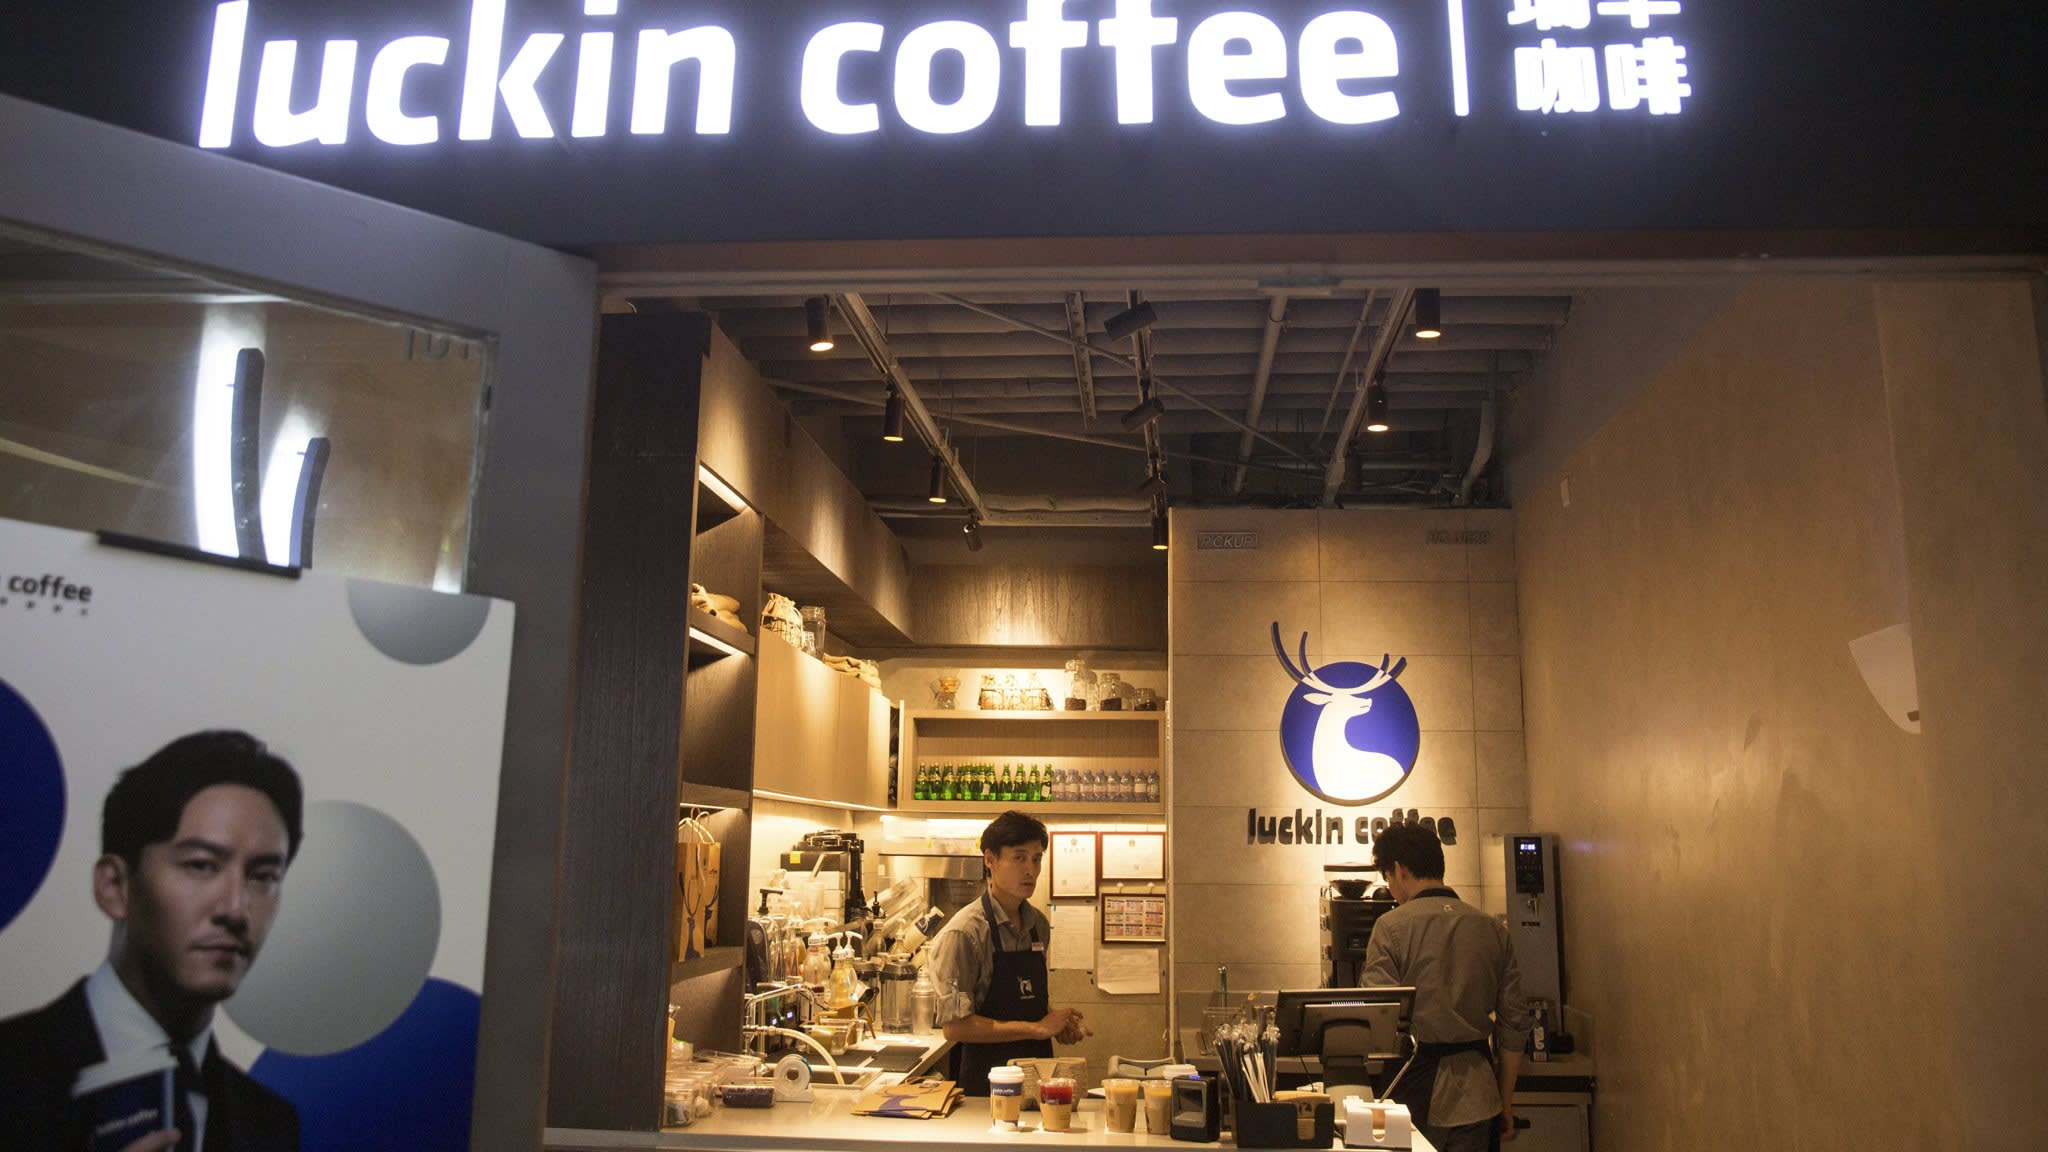 Chinese rival to Starbucks pursues growth at expense of profit